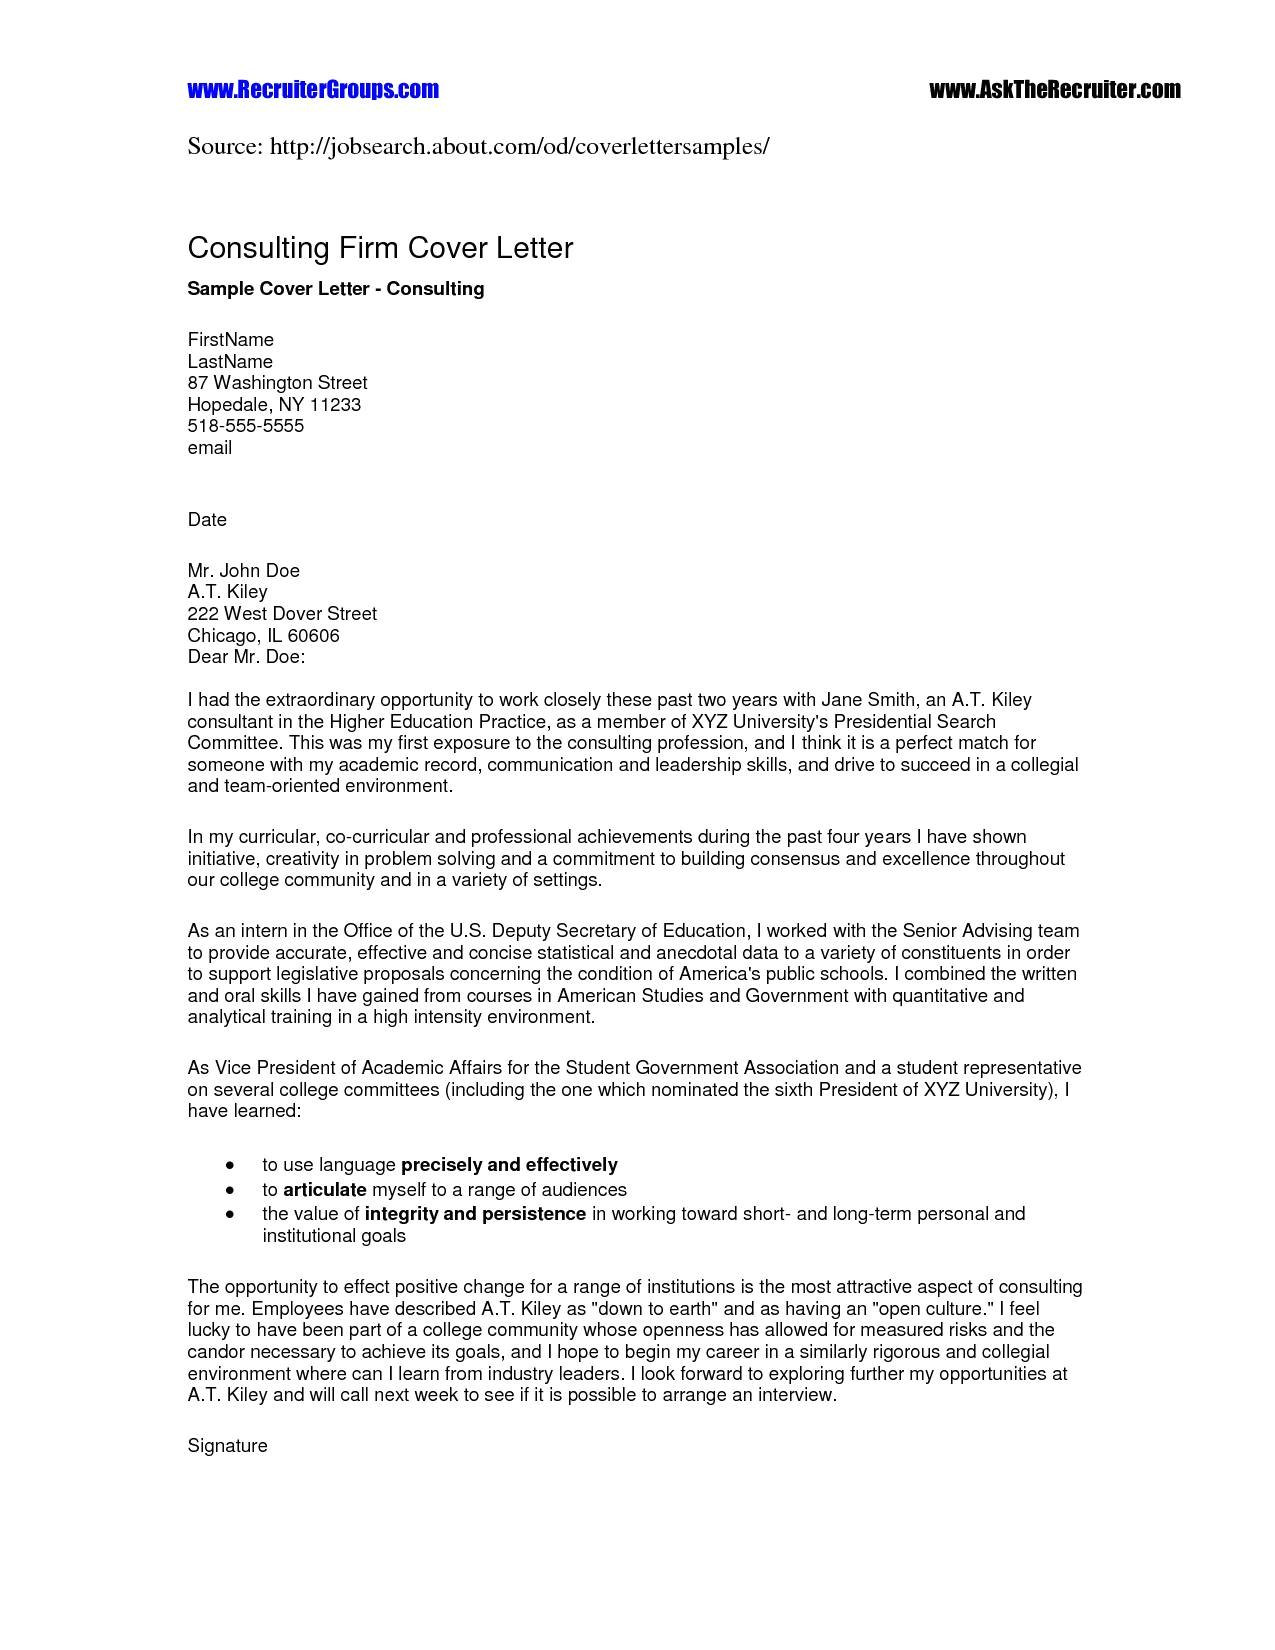 Real Cover Letters that Worked Resume How to Create A Cover Letter for Resume Best